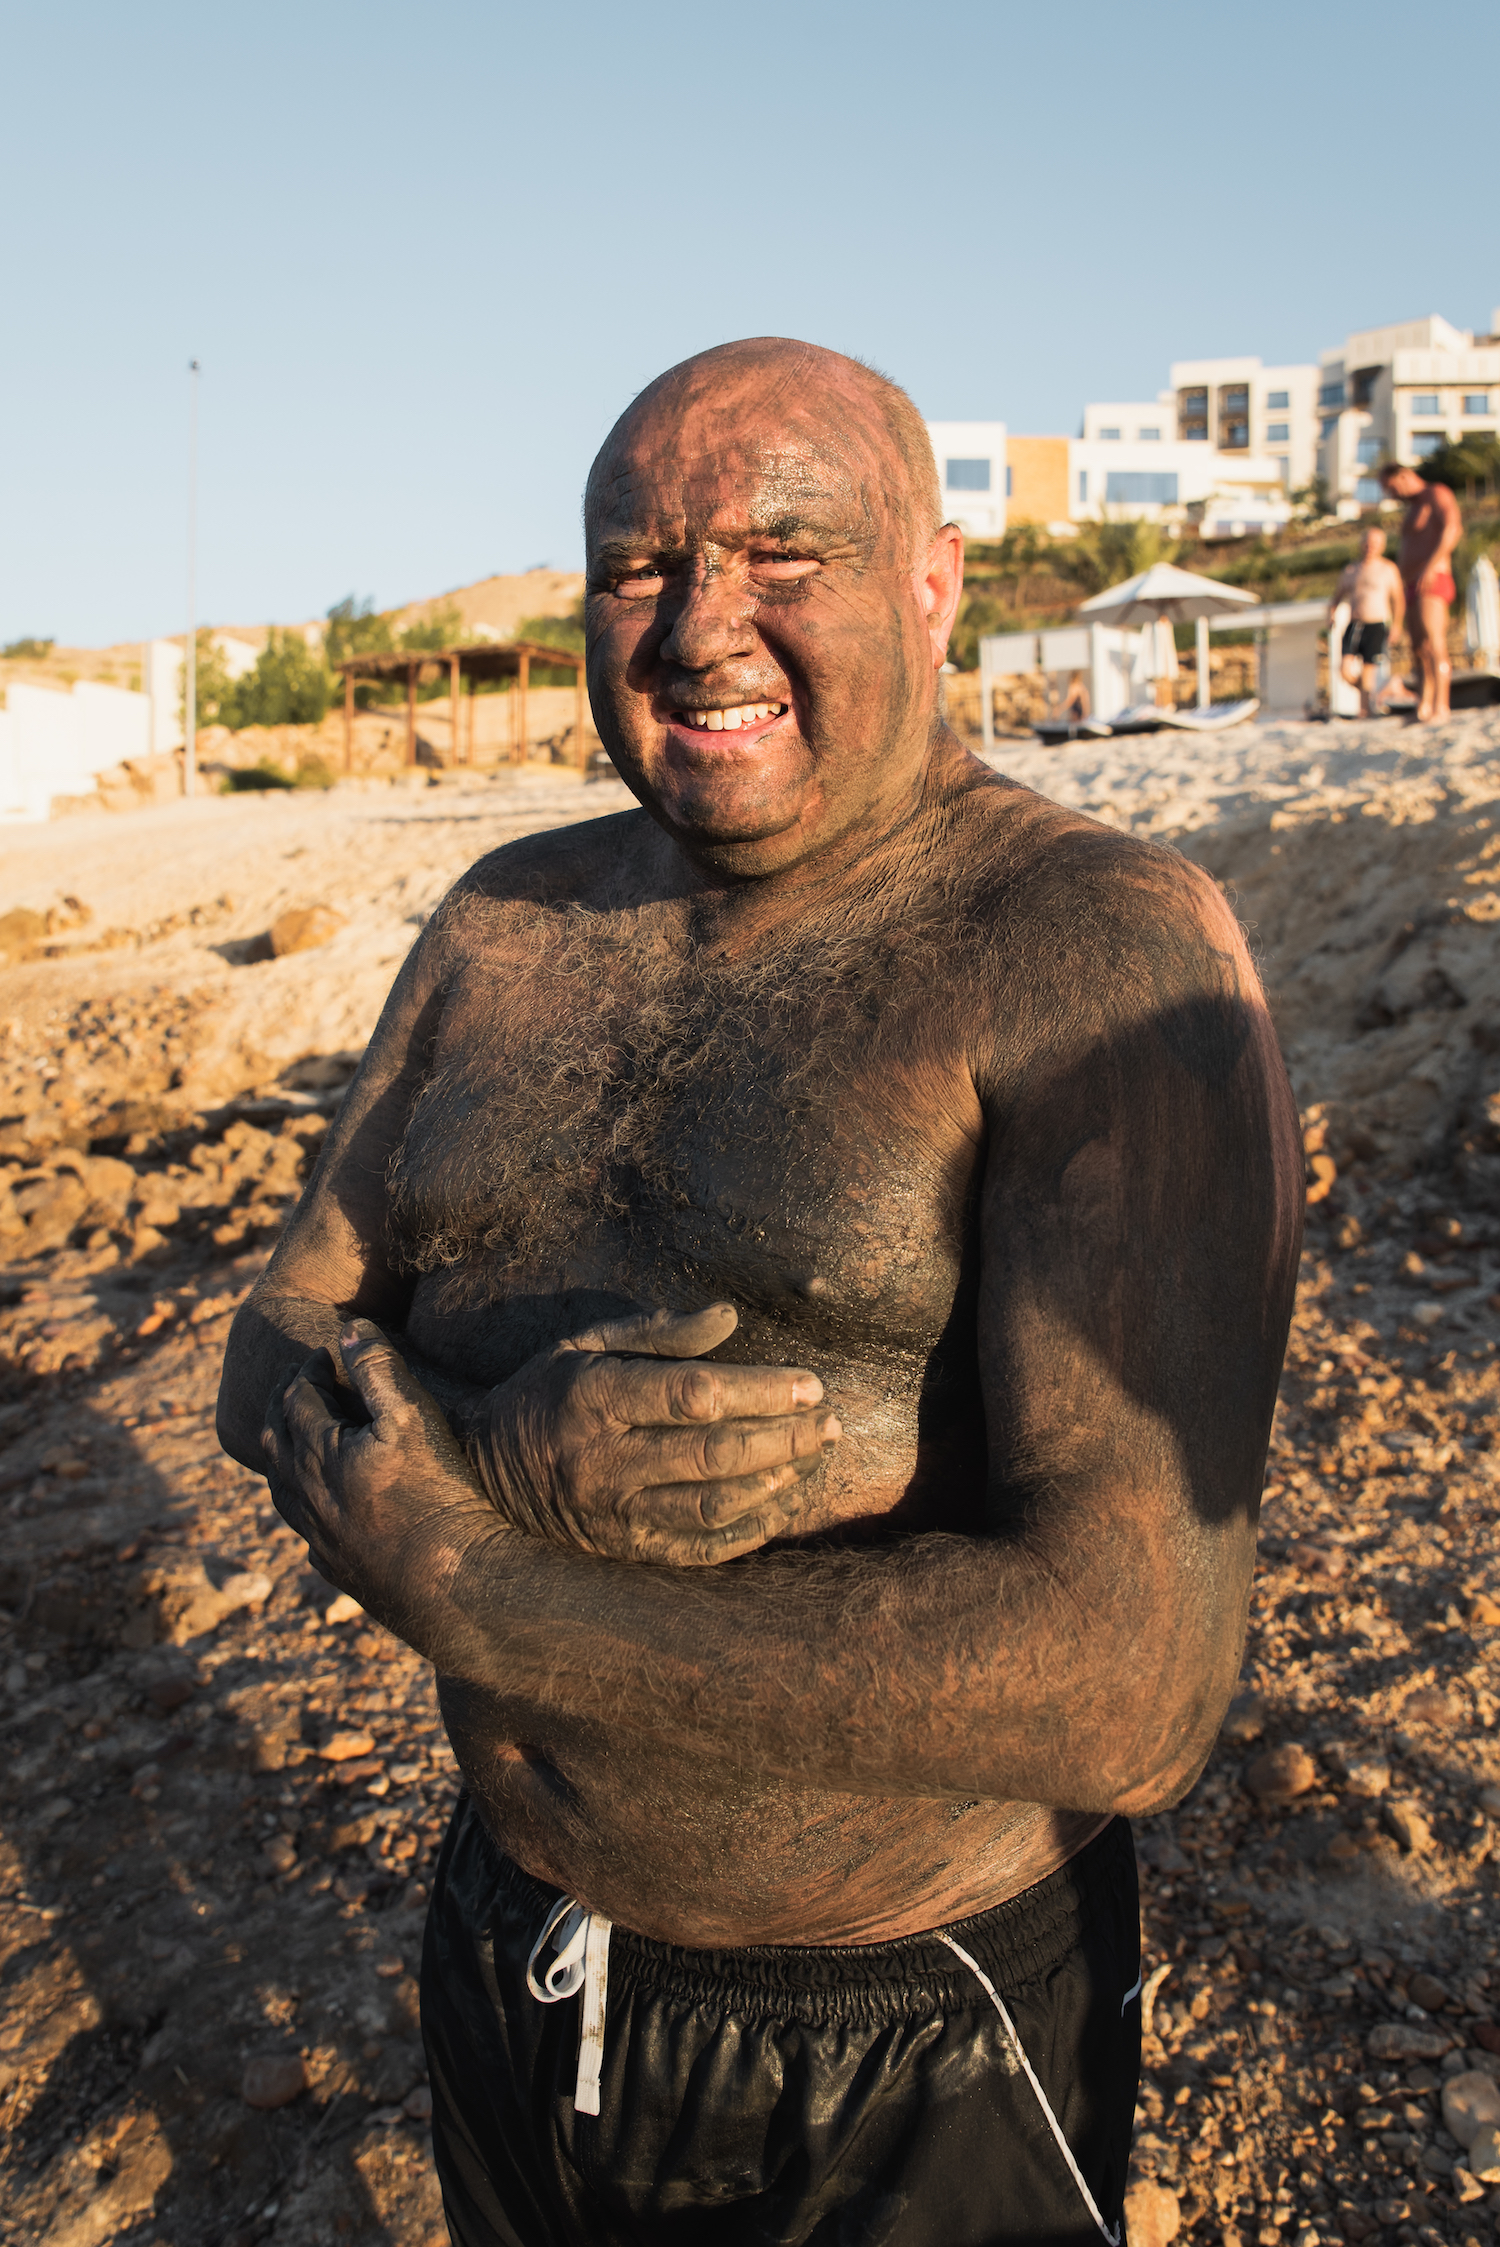 Mud bath and bathe, Dead Sea, Jordan.